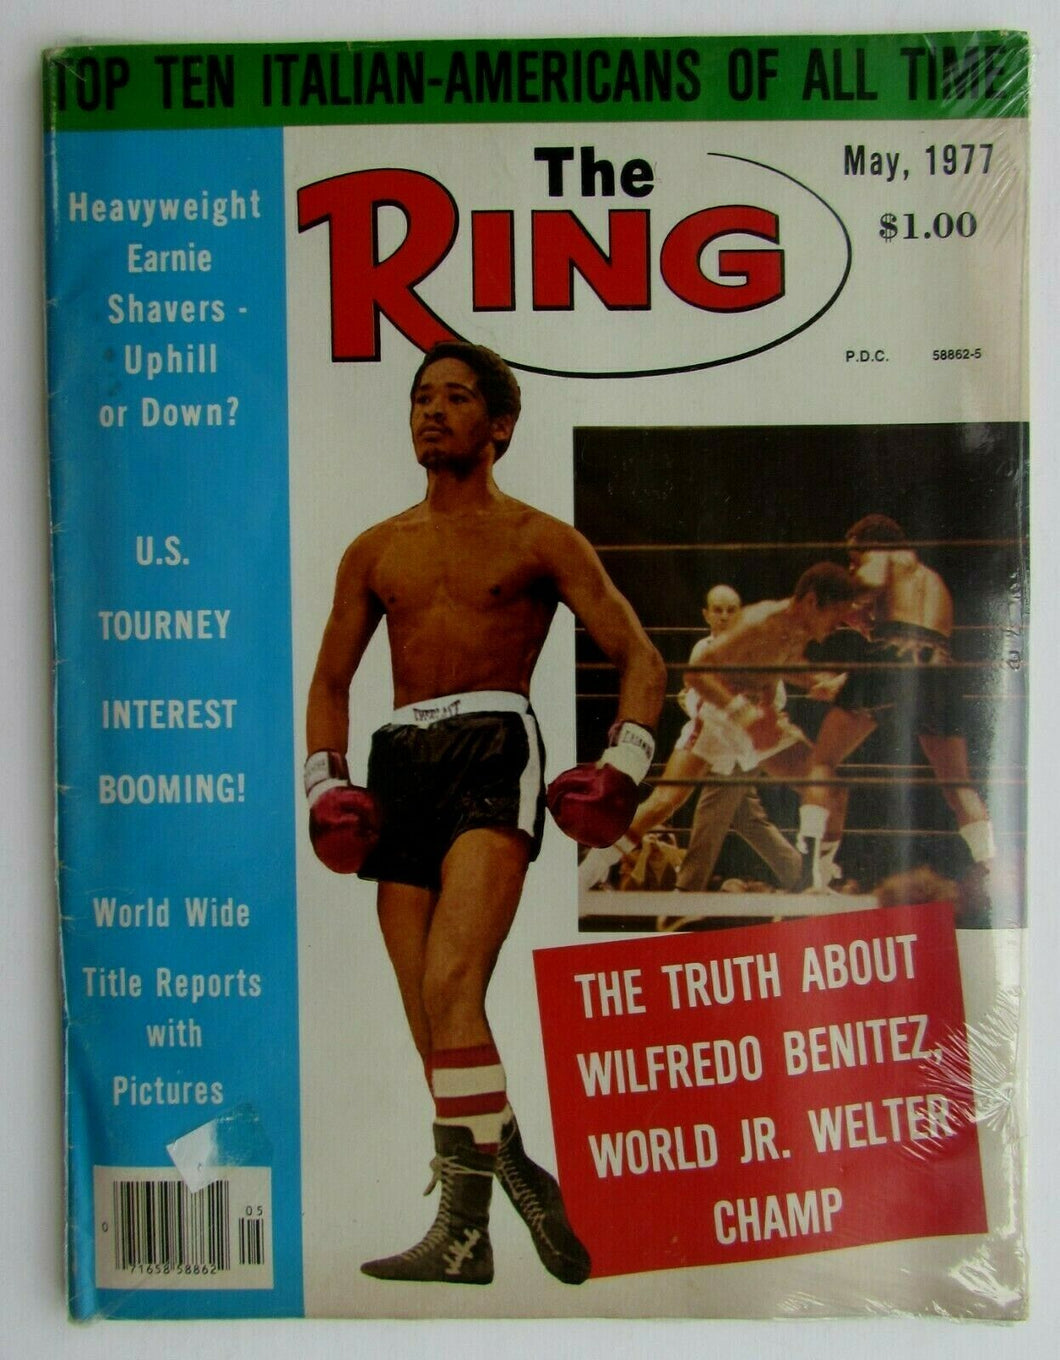 1977 The Ring Boxing Magazine World Junior Welter Champion Wilfredo Benitez